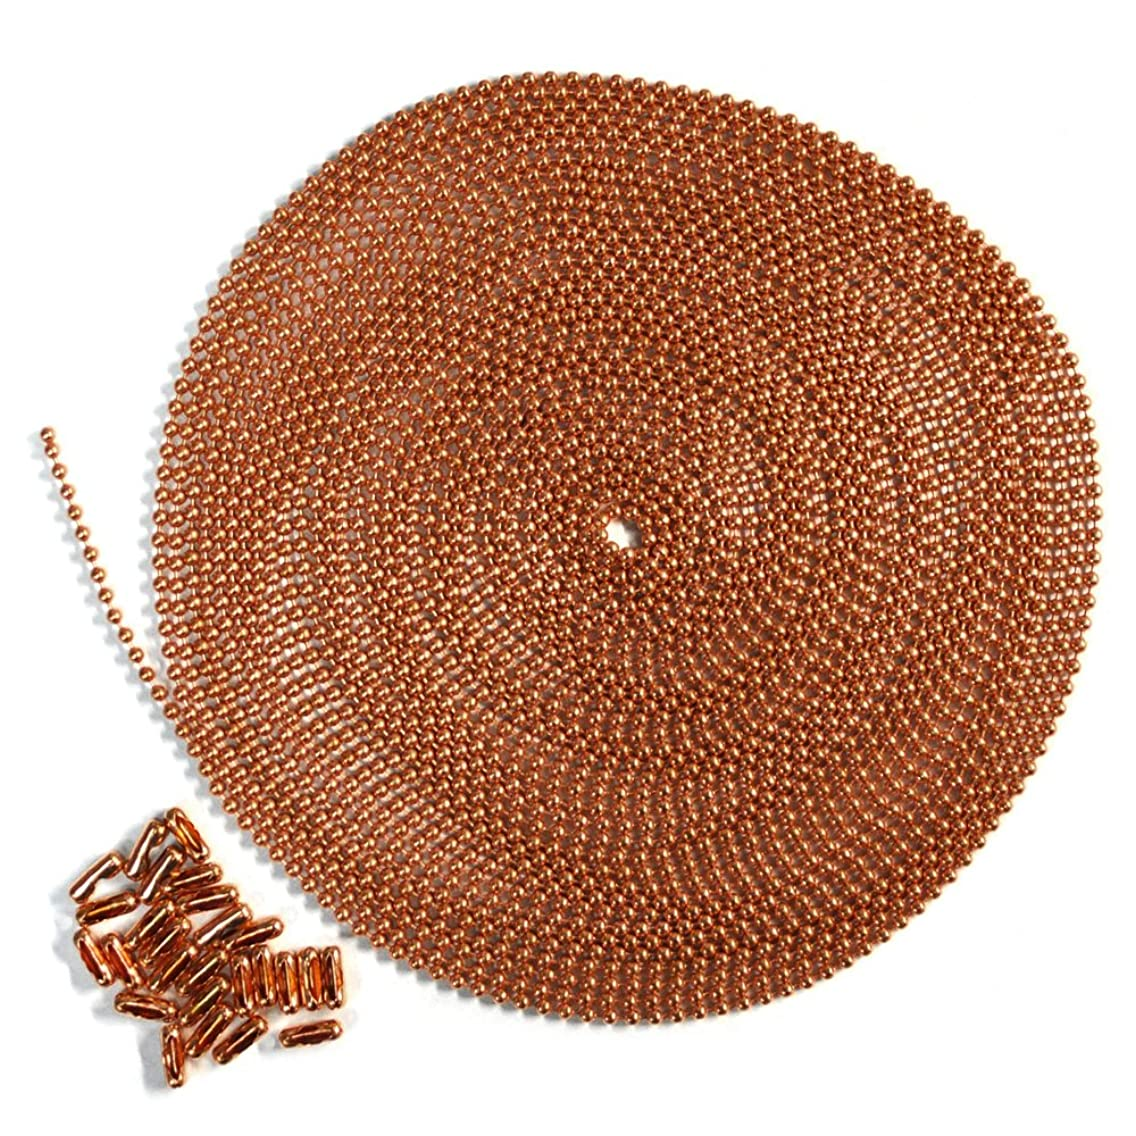 25 Foot Length Ball Chain, Number 6 Size, Copper, 25 Matching Connectors